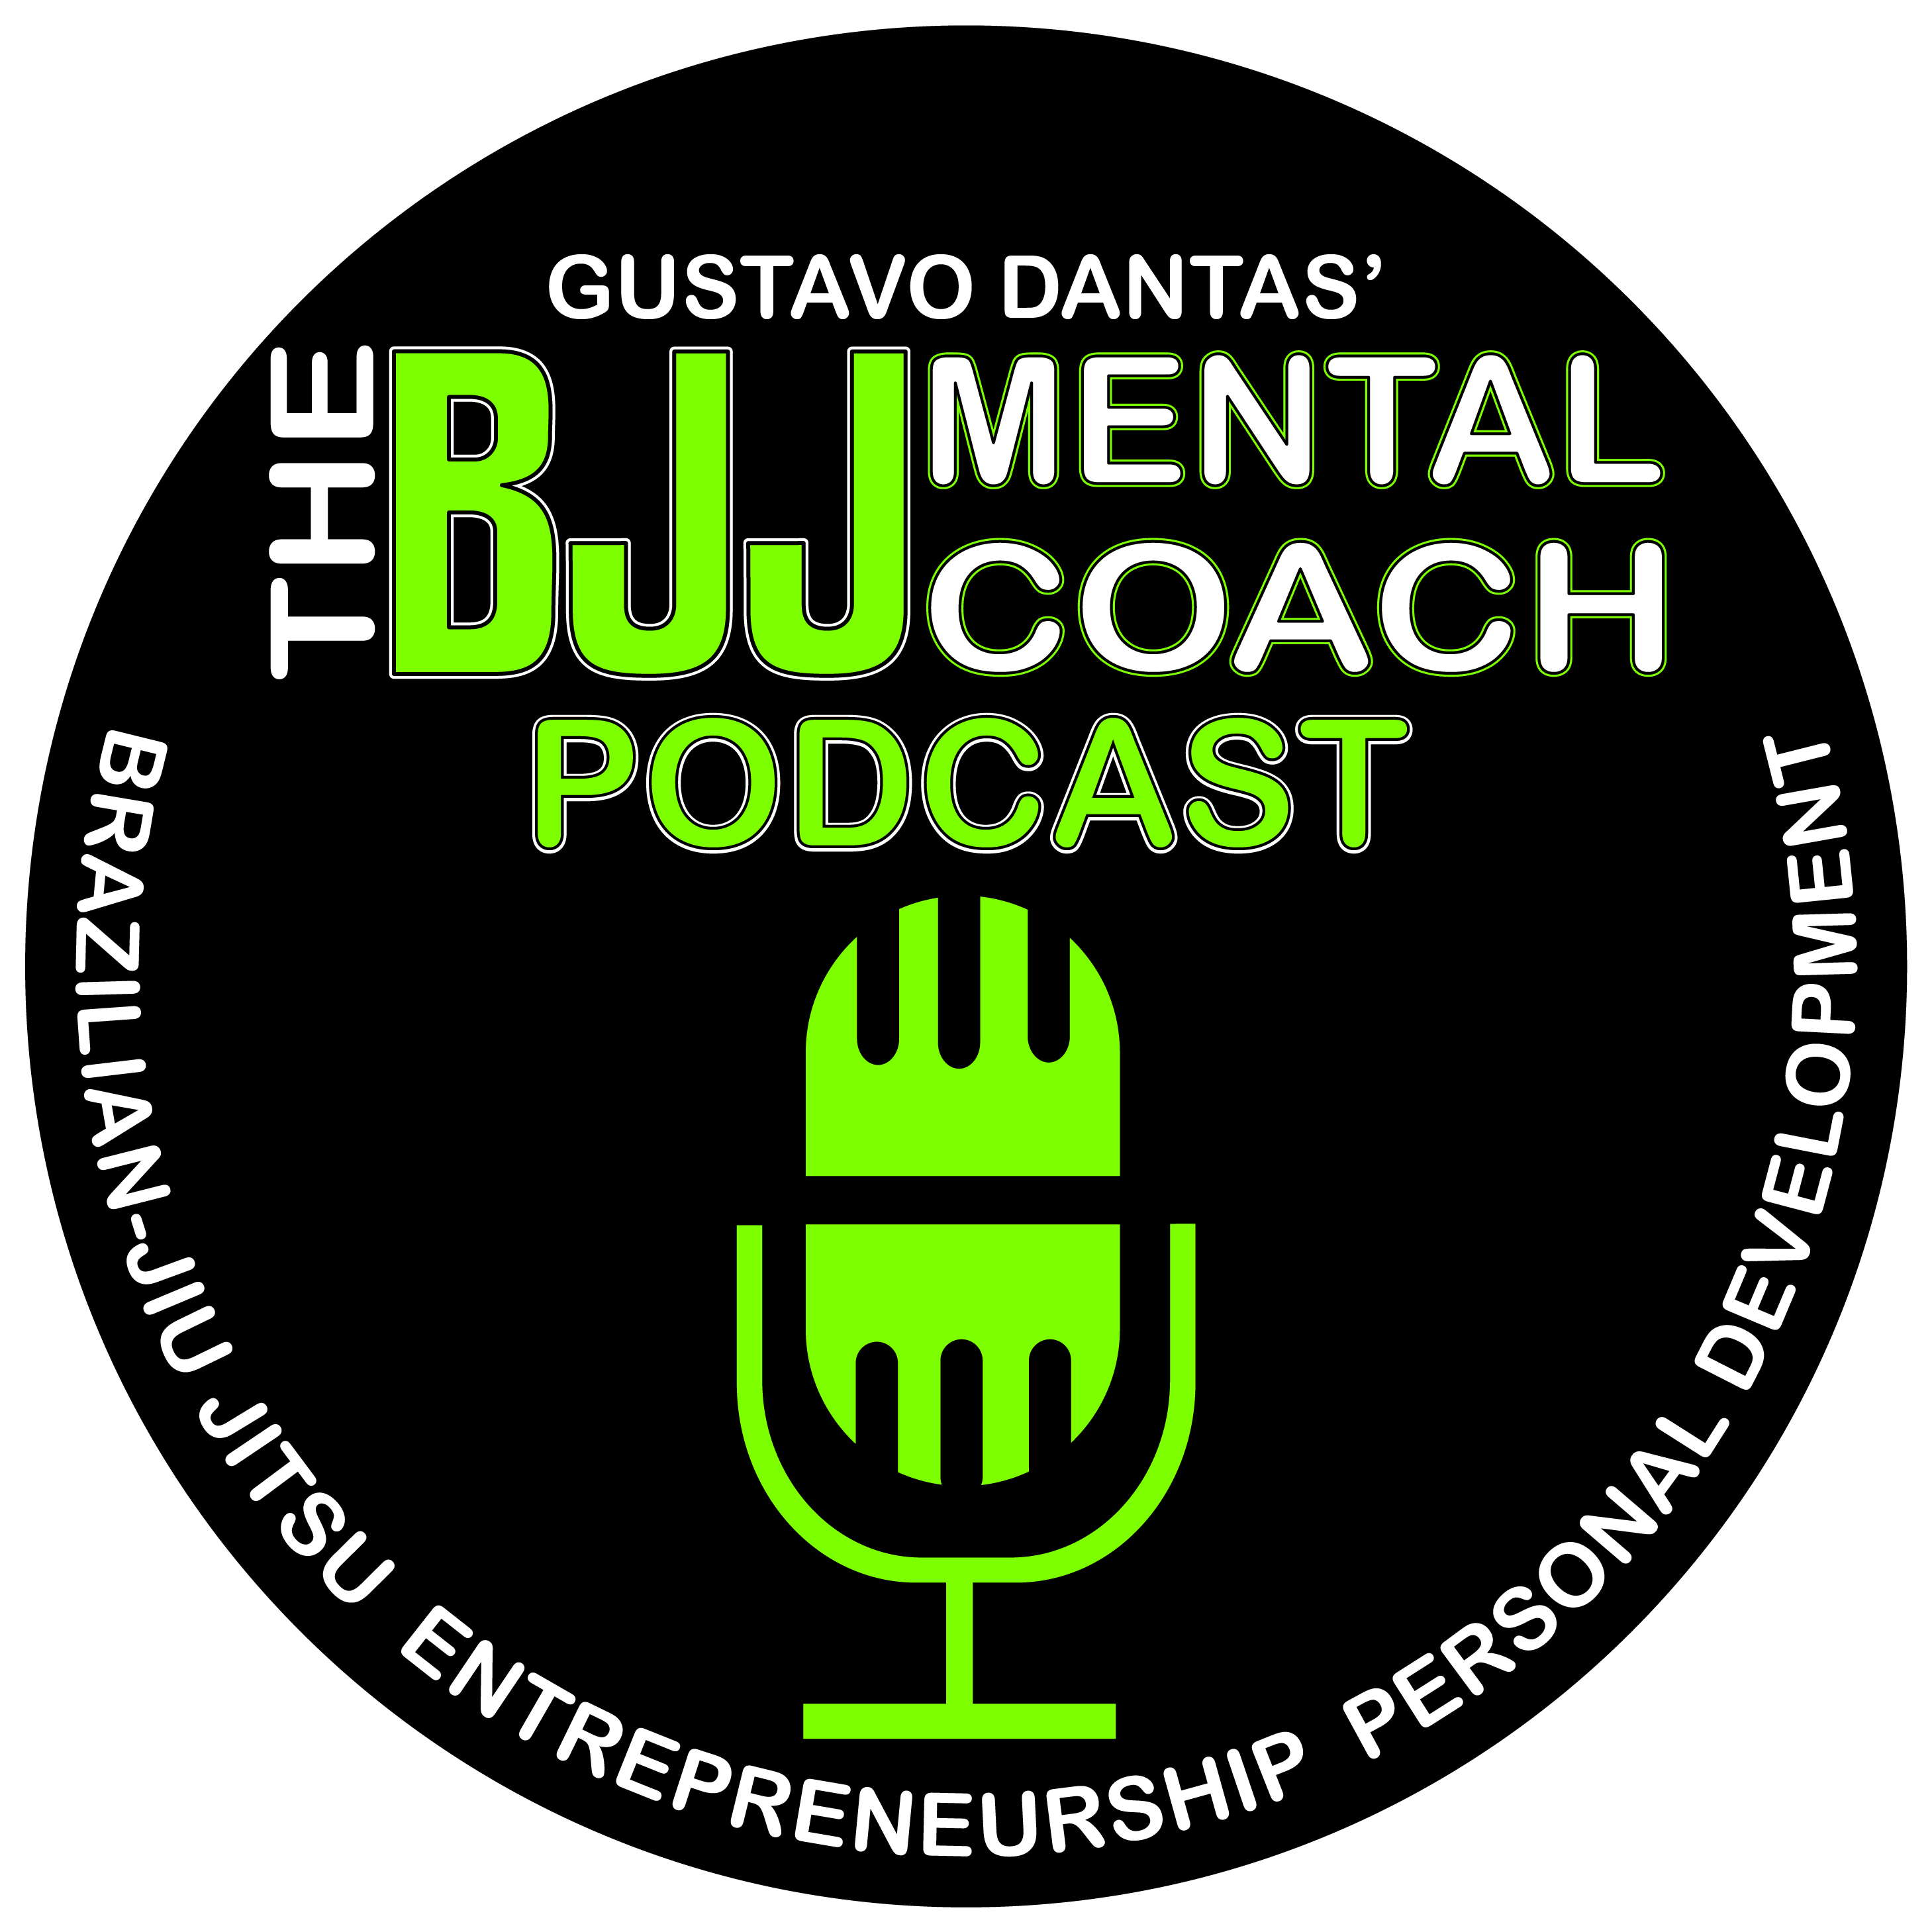 The BJJ Mental Coach Podcast with Gustavo Dantas